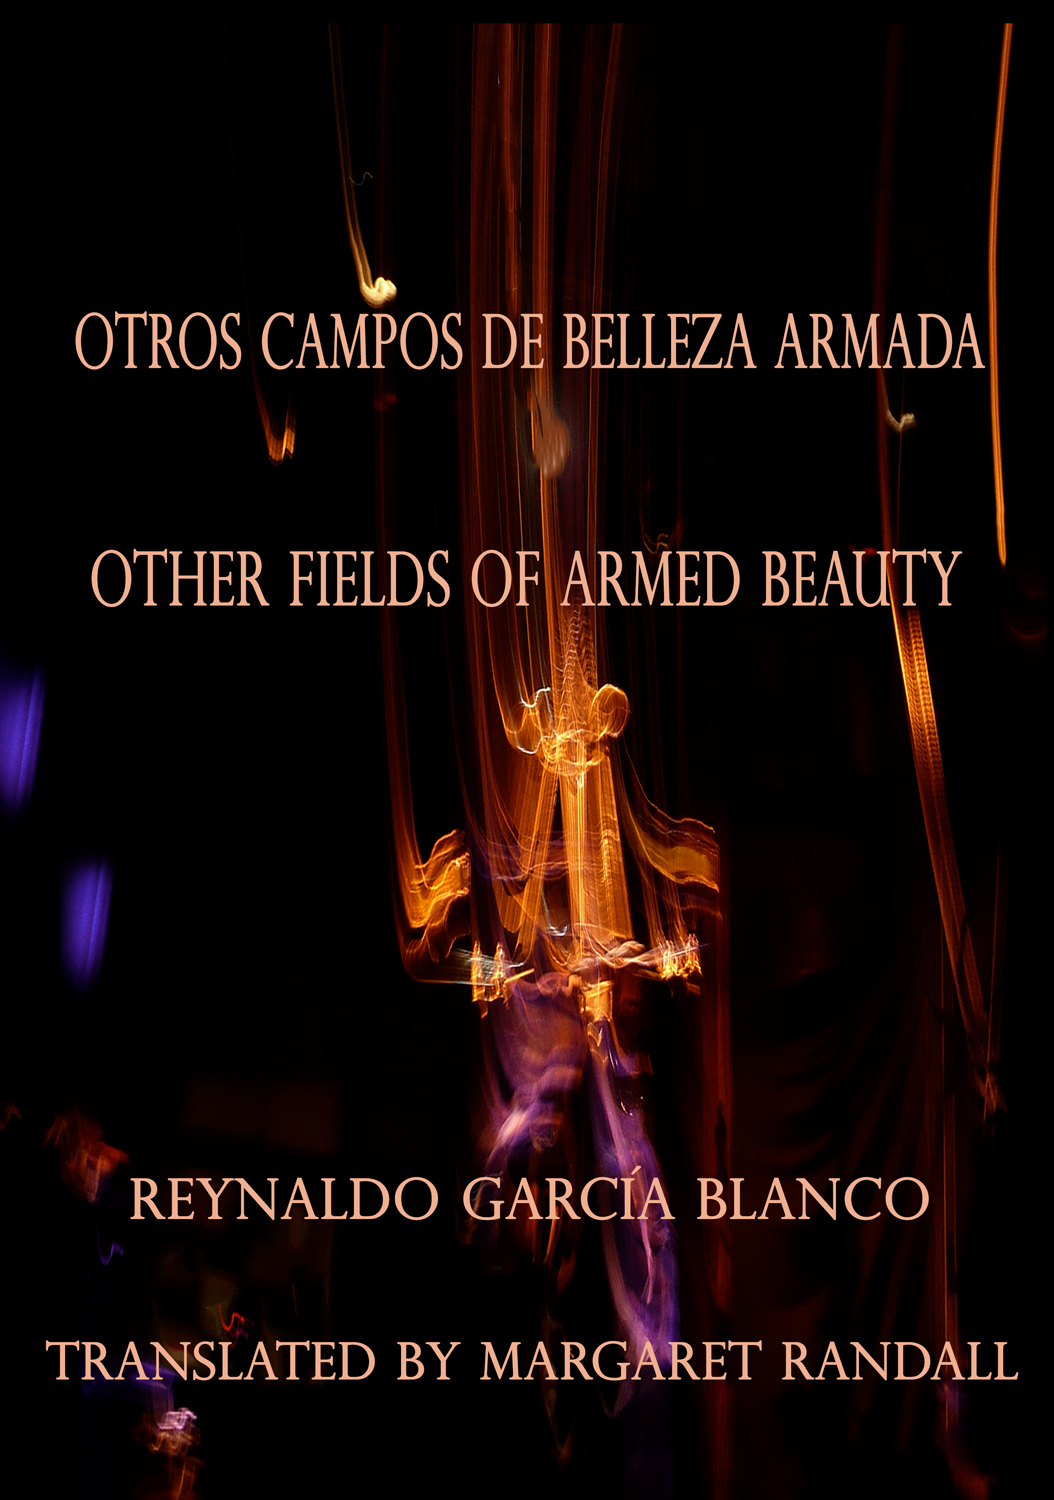 Otros Campos de Belleza Armada / Other Fields of Armed Beauty